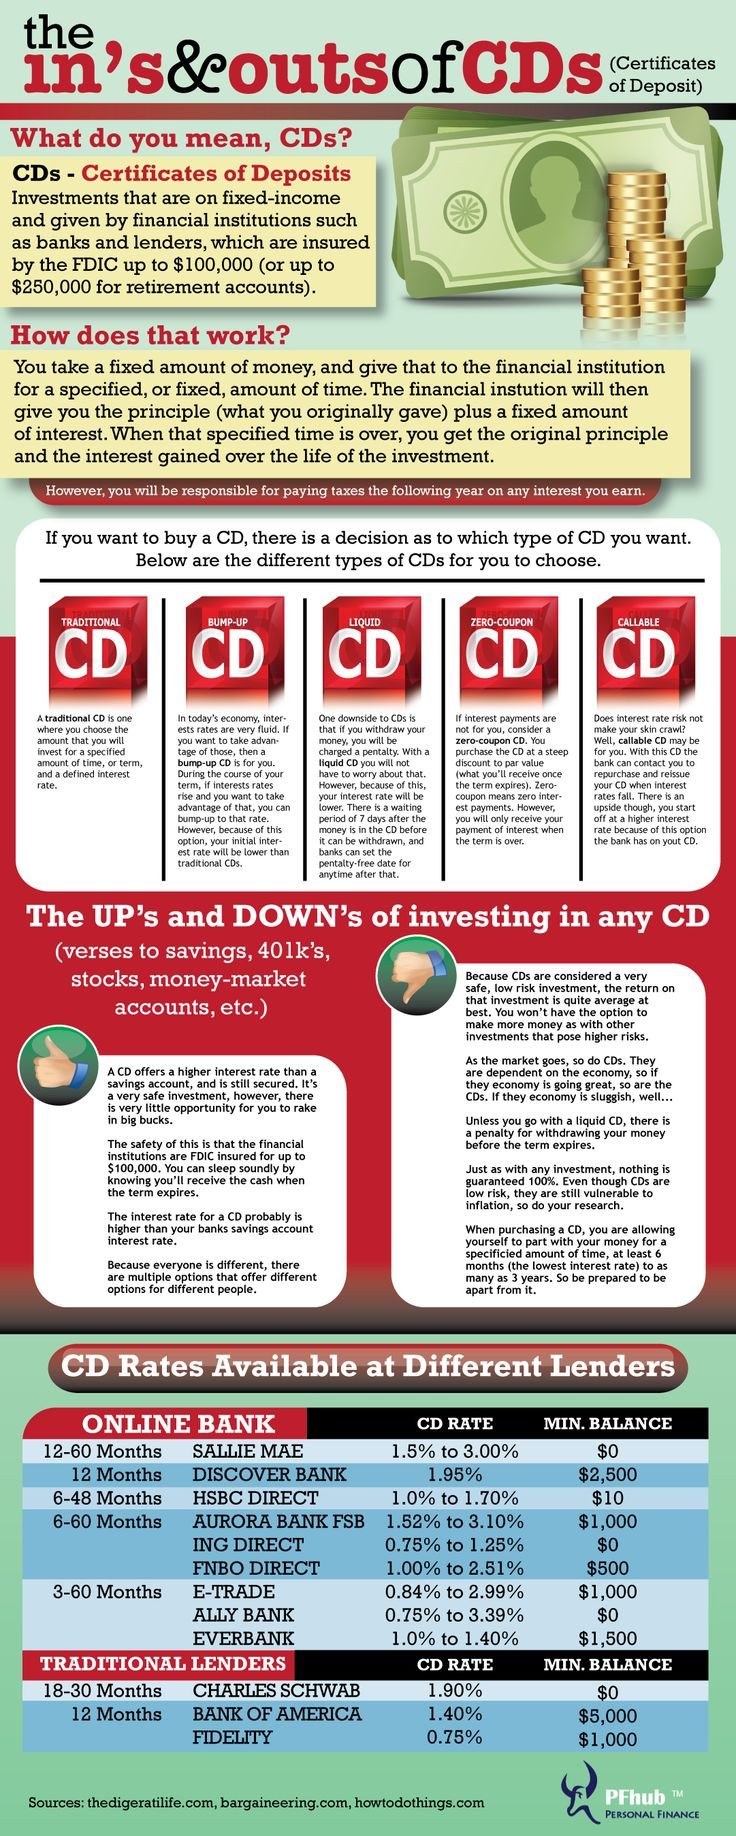 Find out which bank is offering the highest CD rates. Also learn about the different types of CDs available and how each works through a visual graph.